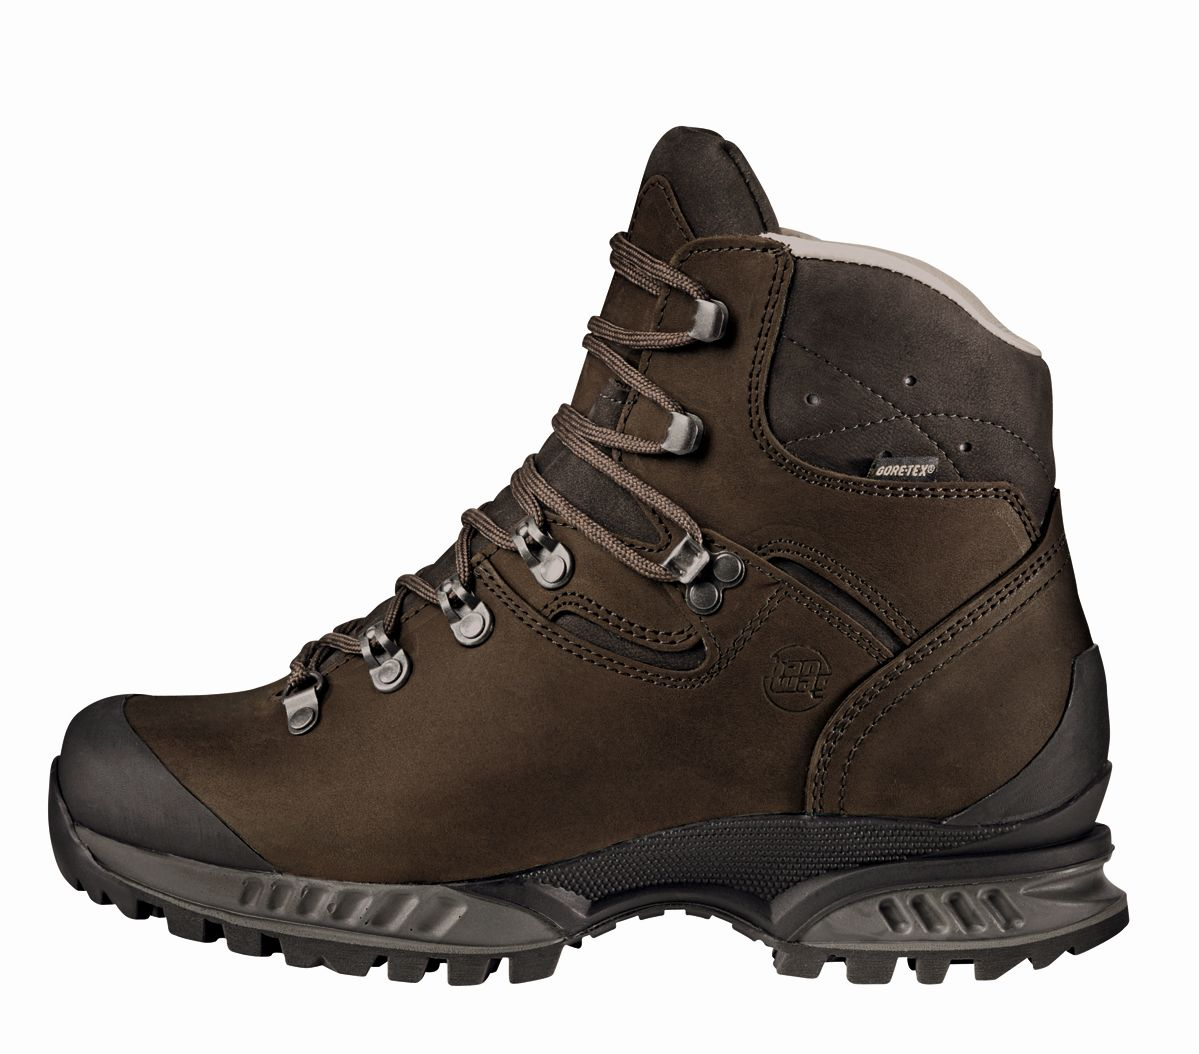 Hanwag Tatra Narrow Brown – Erde-30